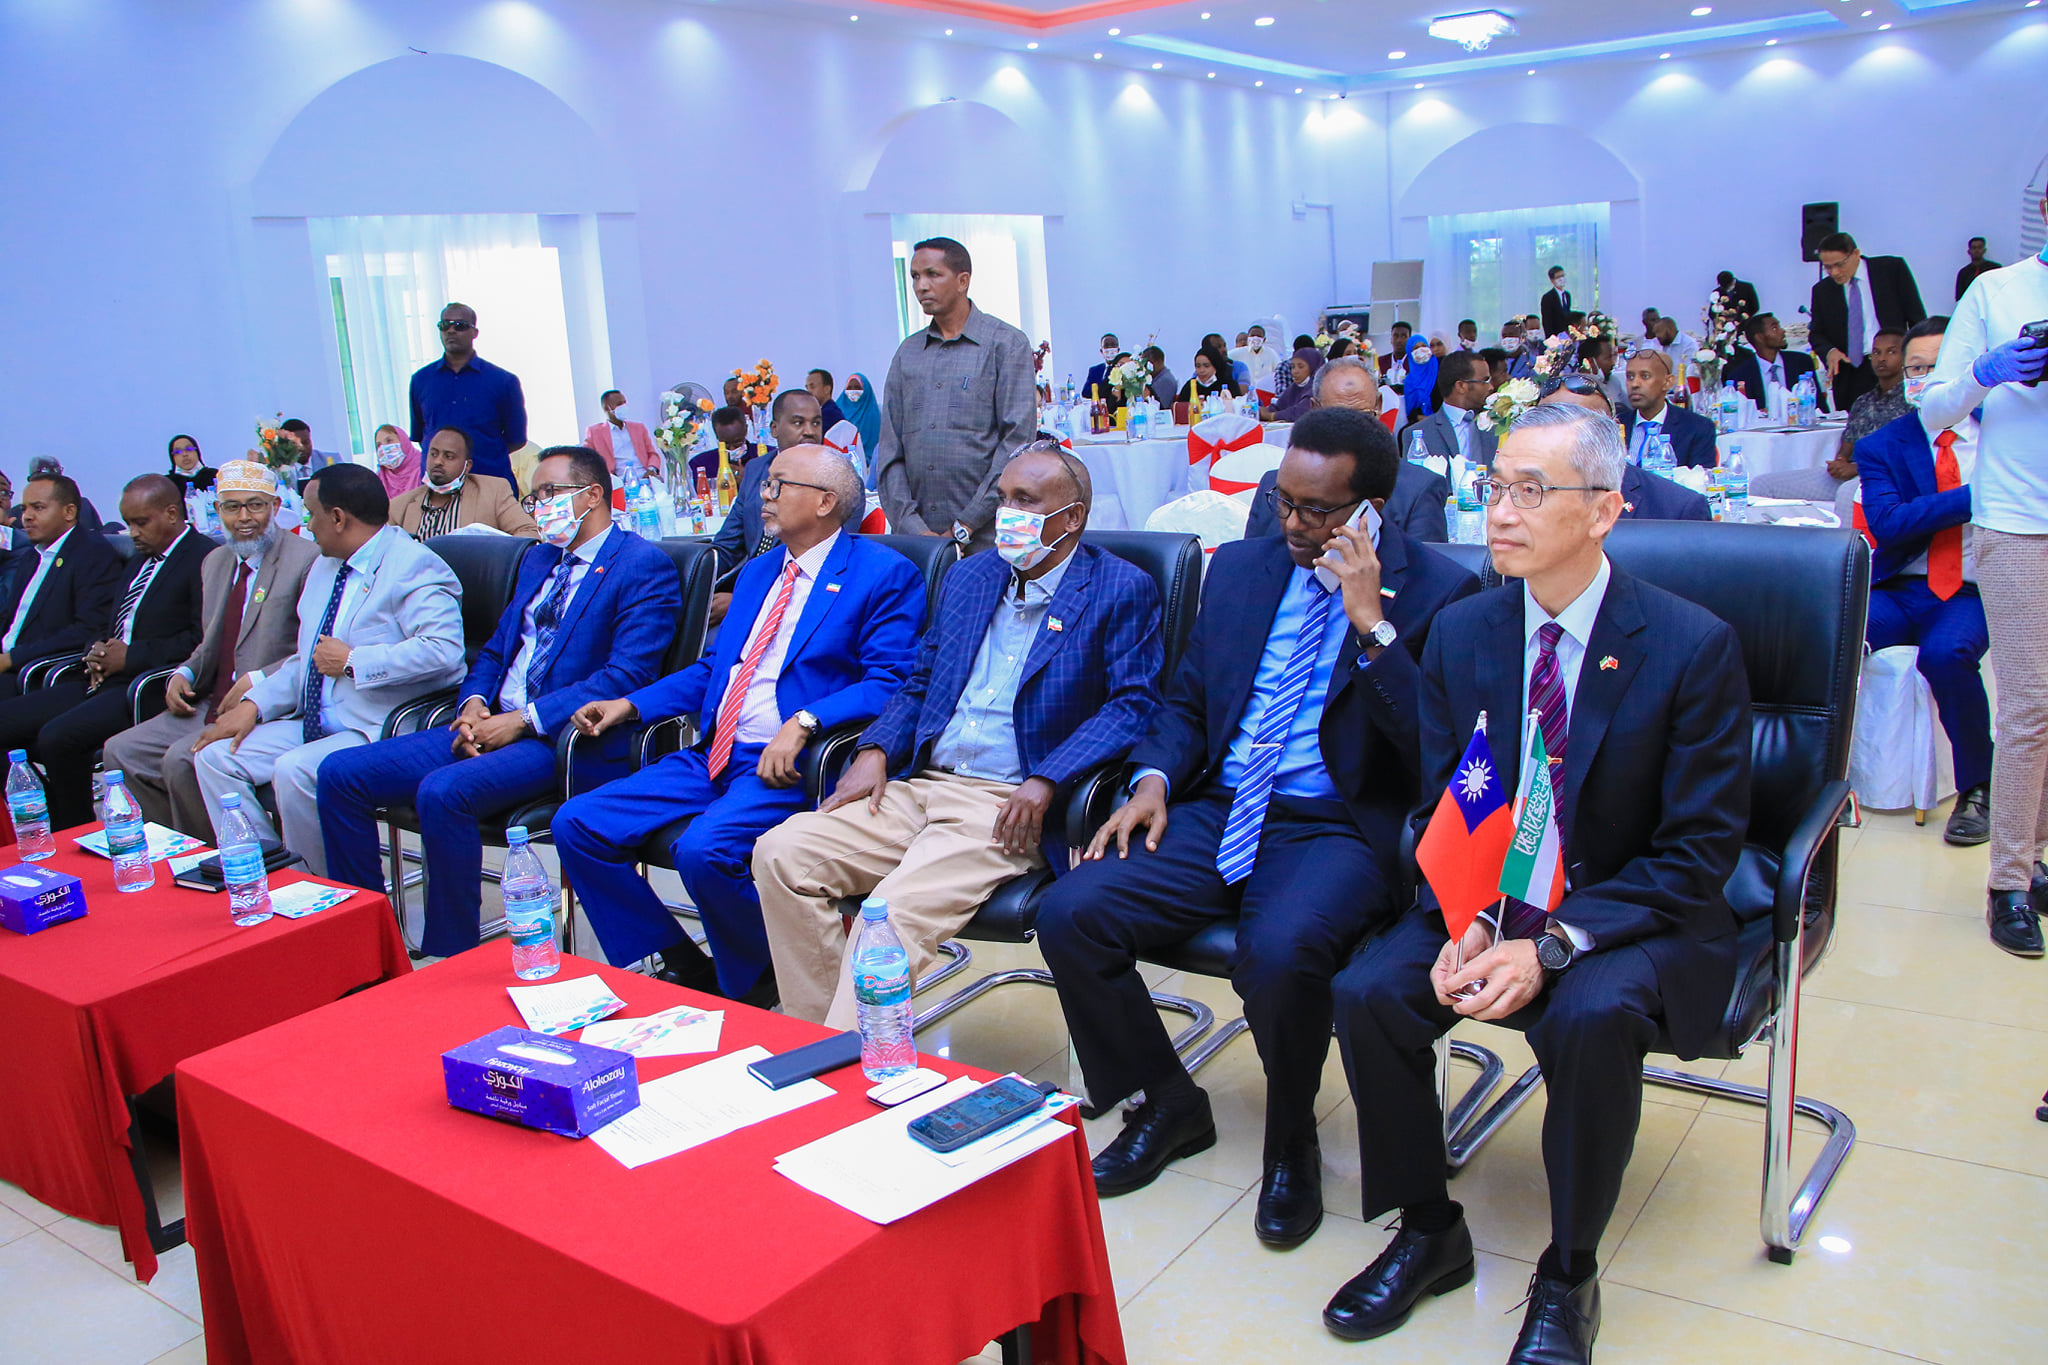 participants of Taiwan Representative Office 1st Anniversary ceremony